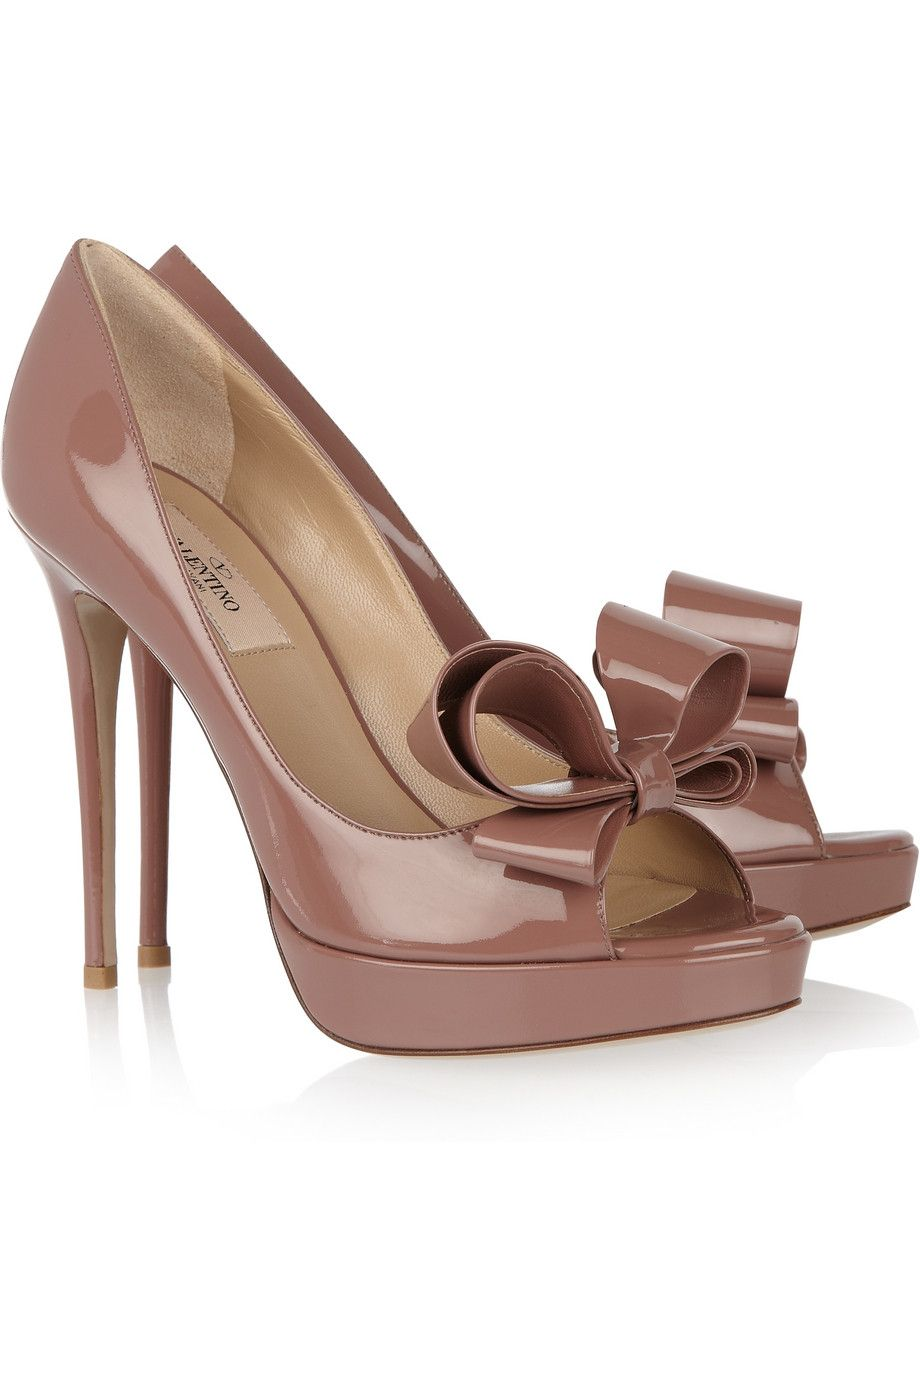 0a297d78f54 Elegantly beautiful Valentino patent-leather dusty rose hued bow ...